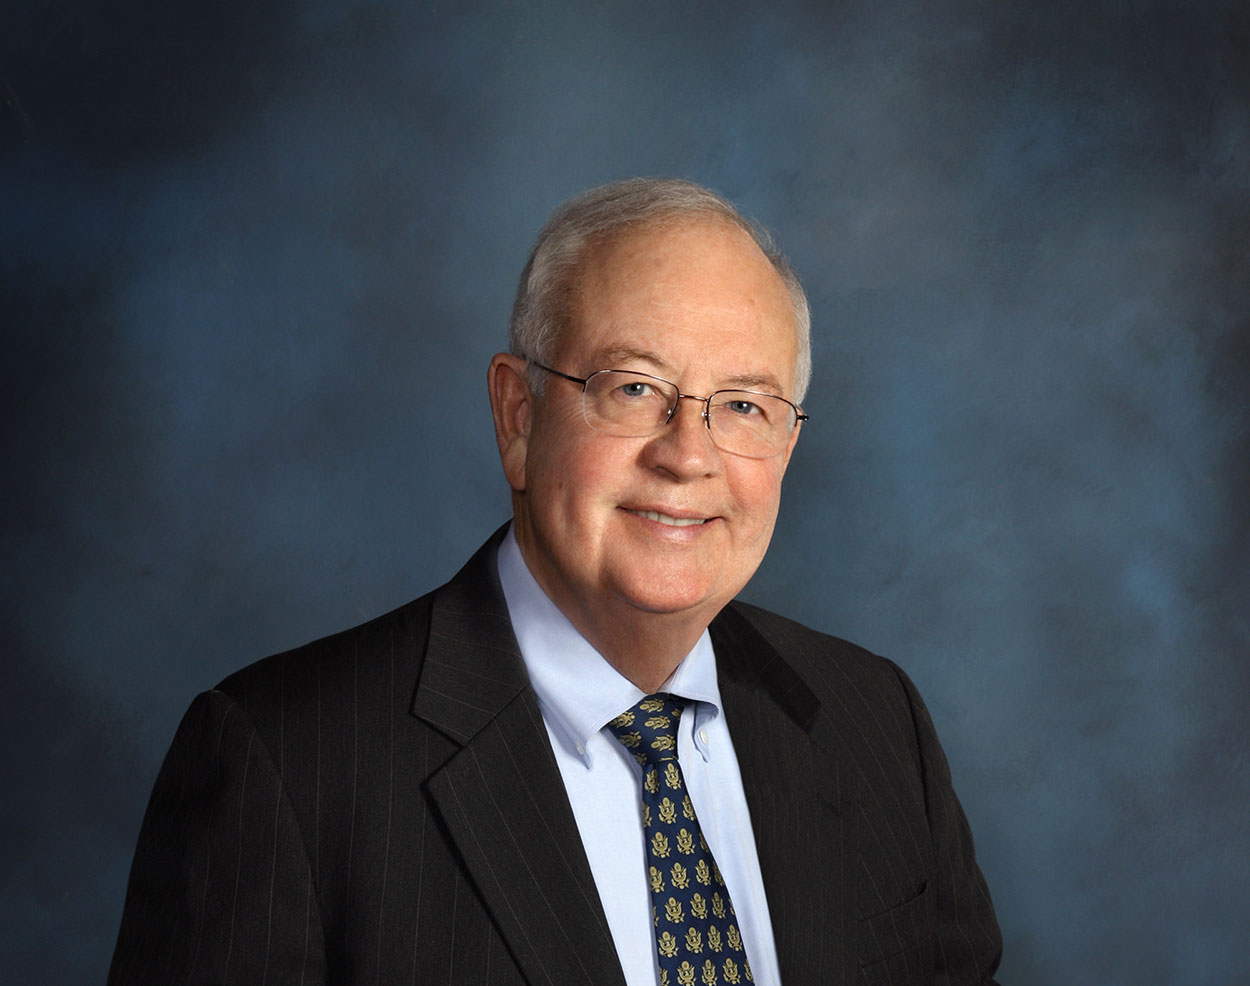 Event - Lecture and Book Signing with Ken Starr